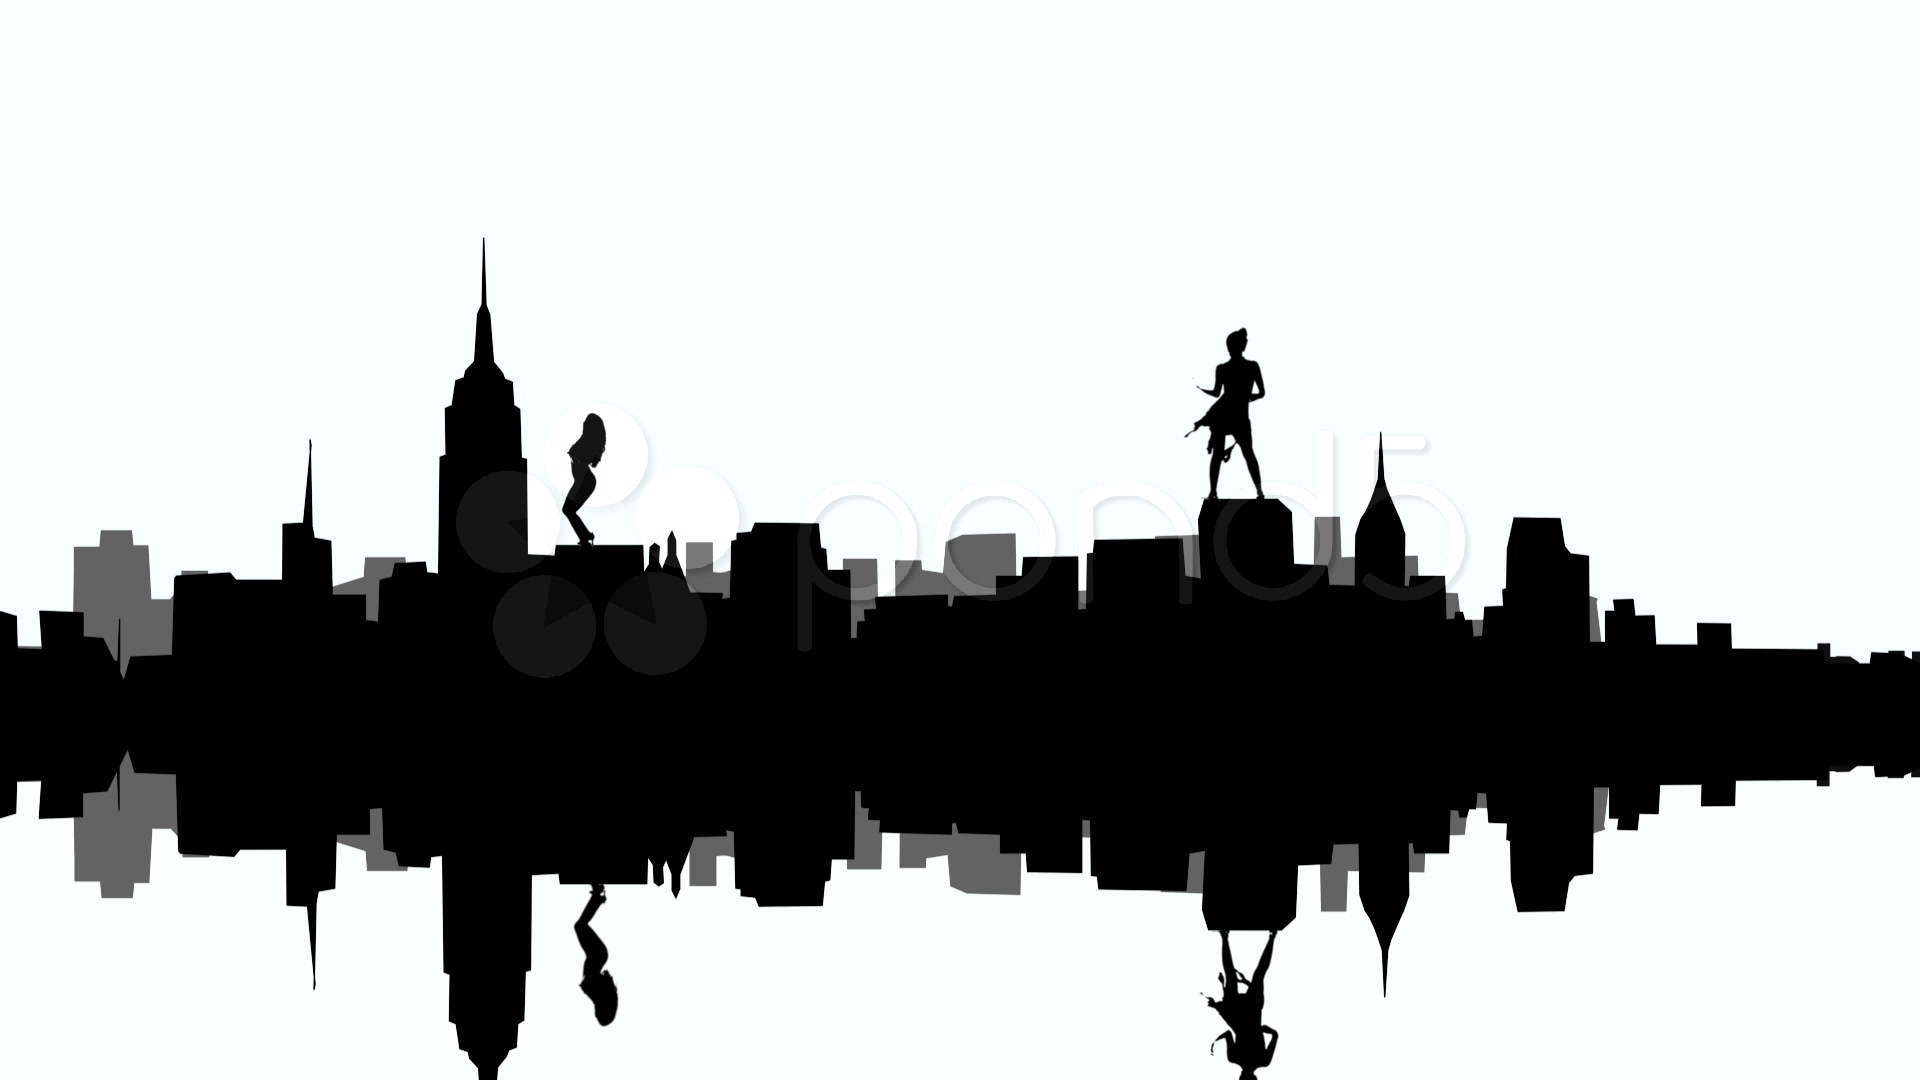 Skyline clipart #7, Download drawings